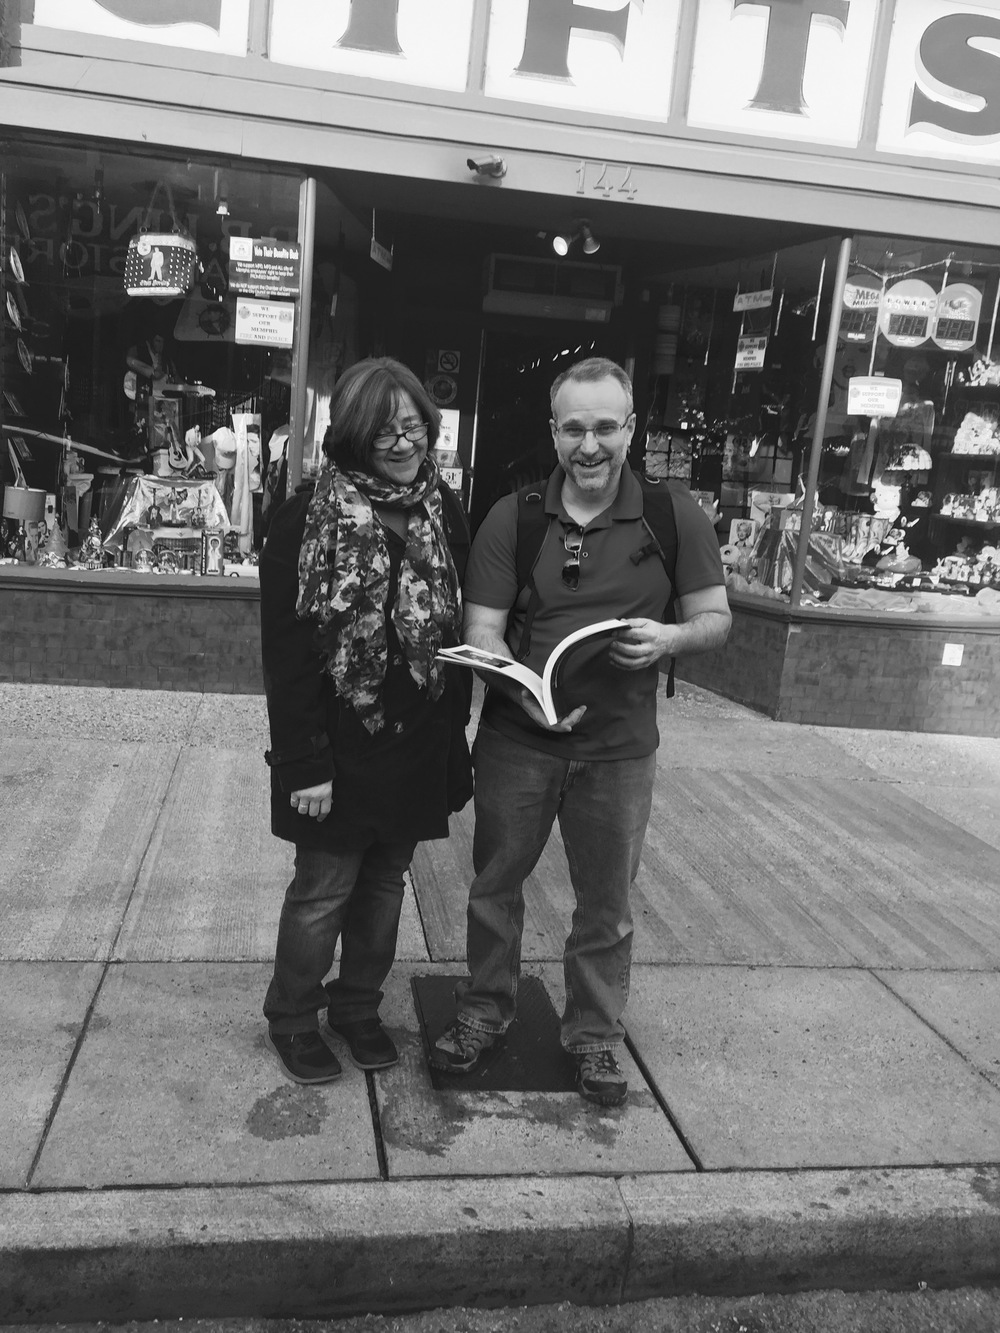 Pat Pepin and Kelly Thornton seeing the book for the first time